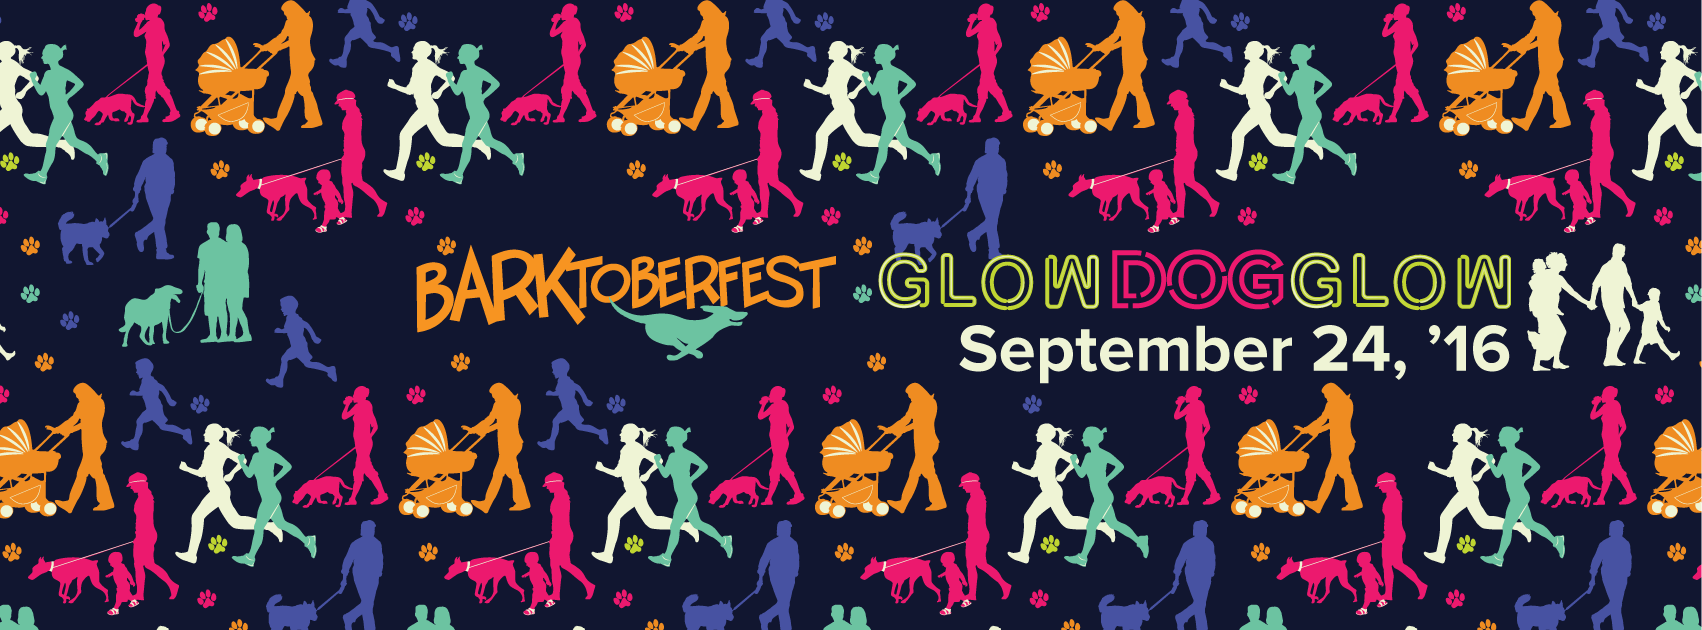 glow-dog-glow-facebook-page-cover